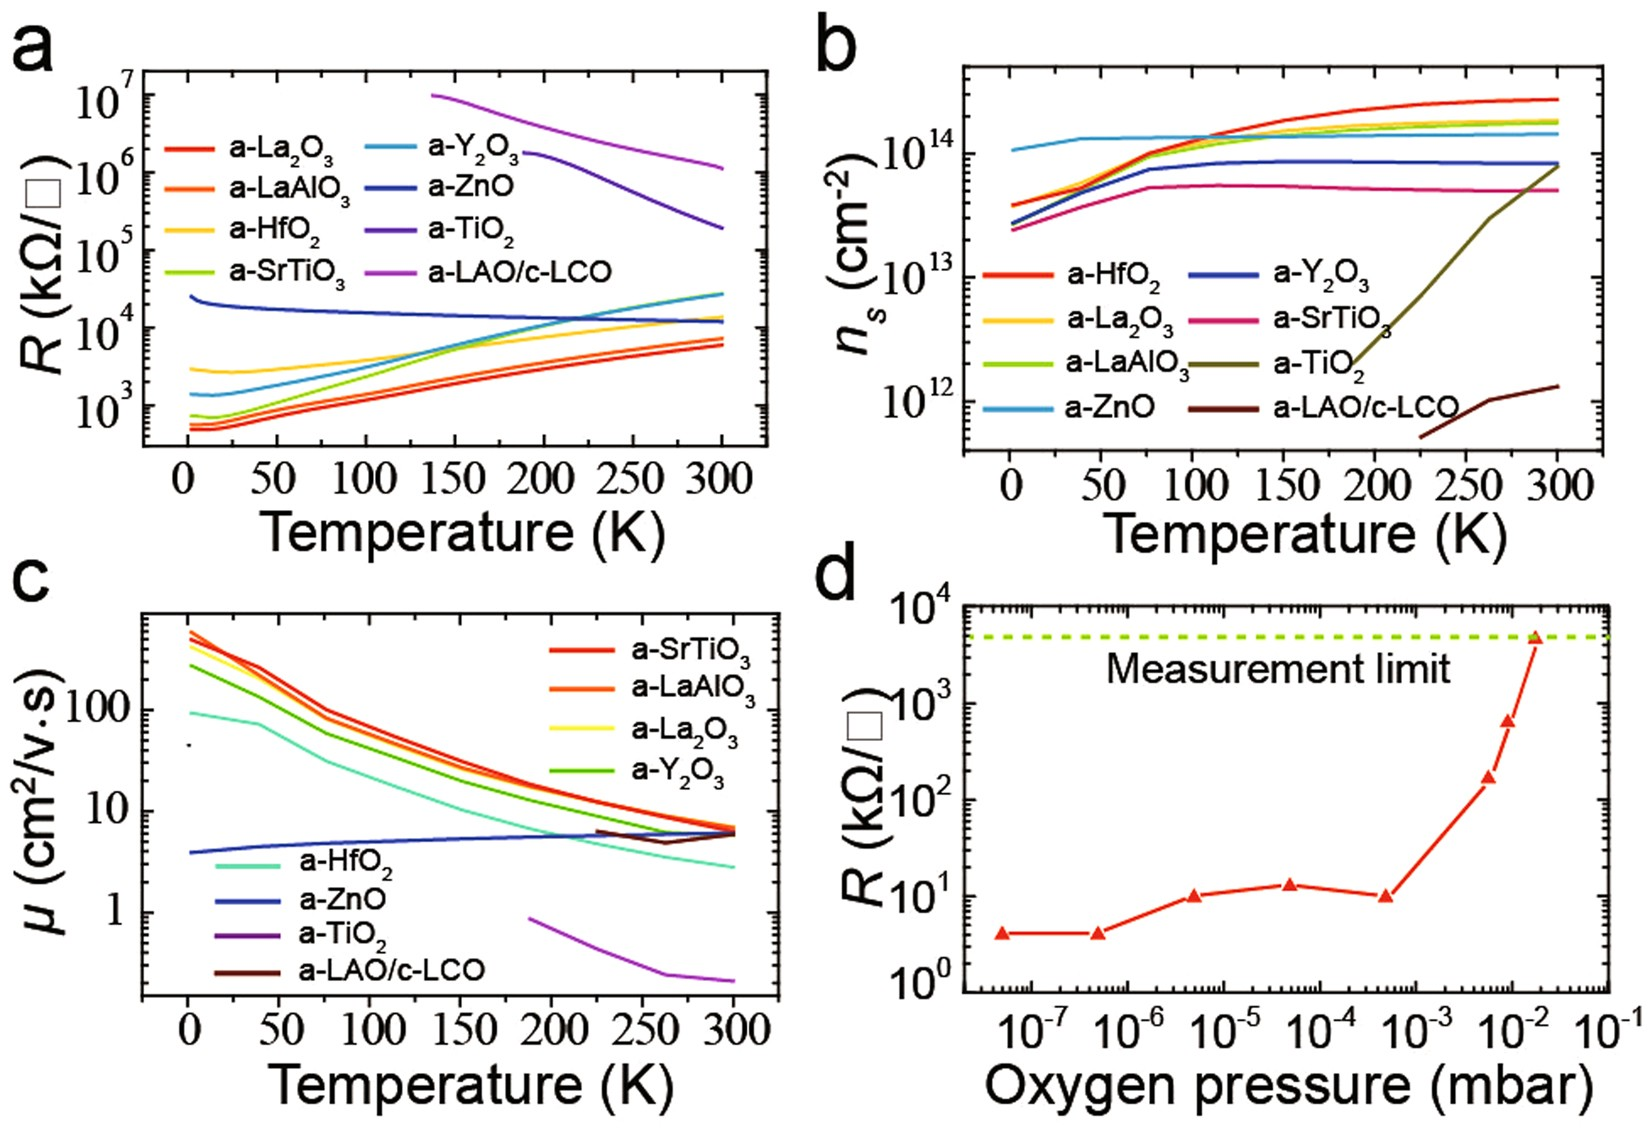 Formation Of Two Dimensional Electron Gas At Amorphous Crystalline Ground Wire Fig 1 Wiring Schematic Typical 2 3 And 4 Oxygen Oxide Interfaces Scientific Reports